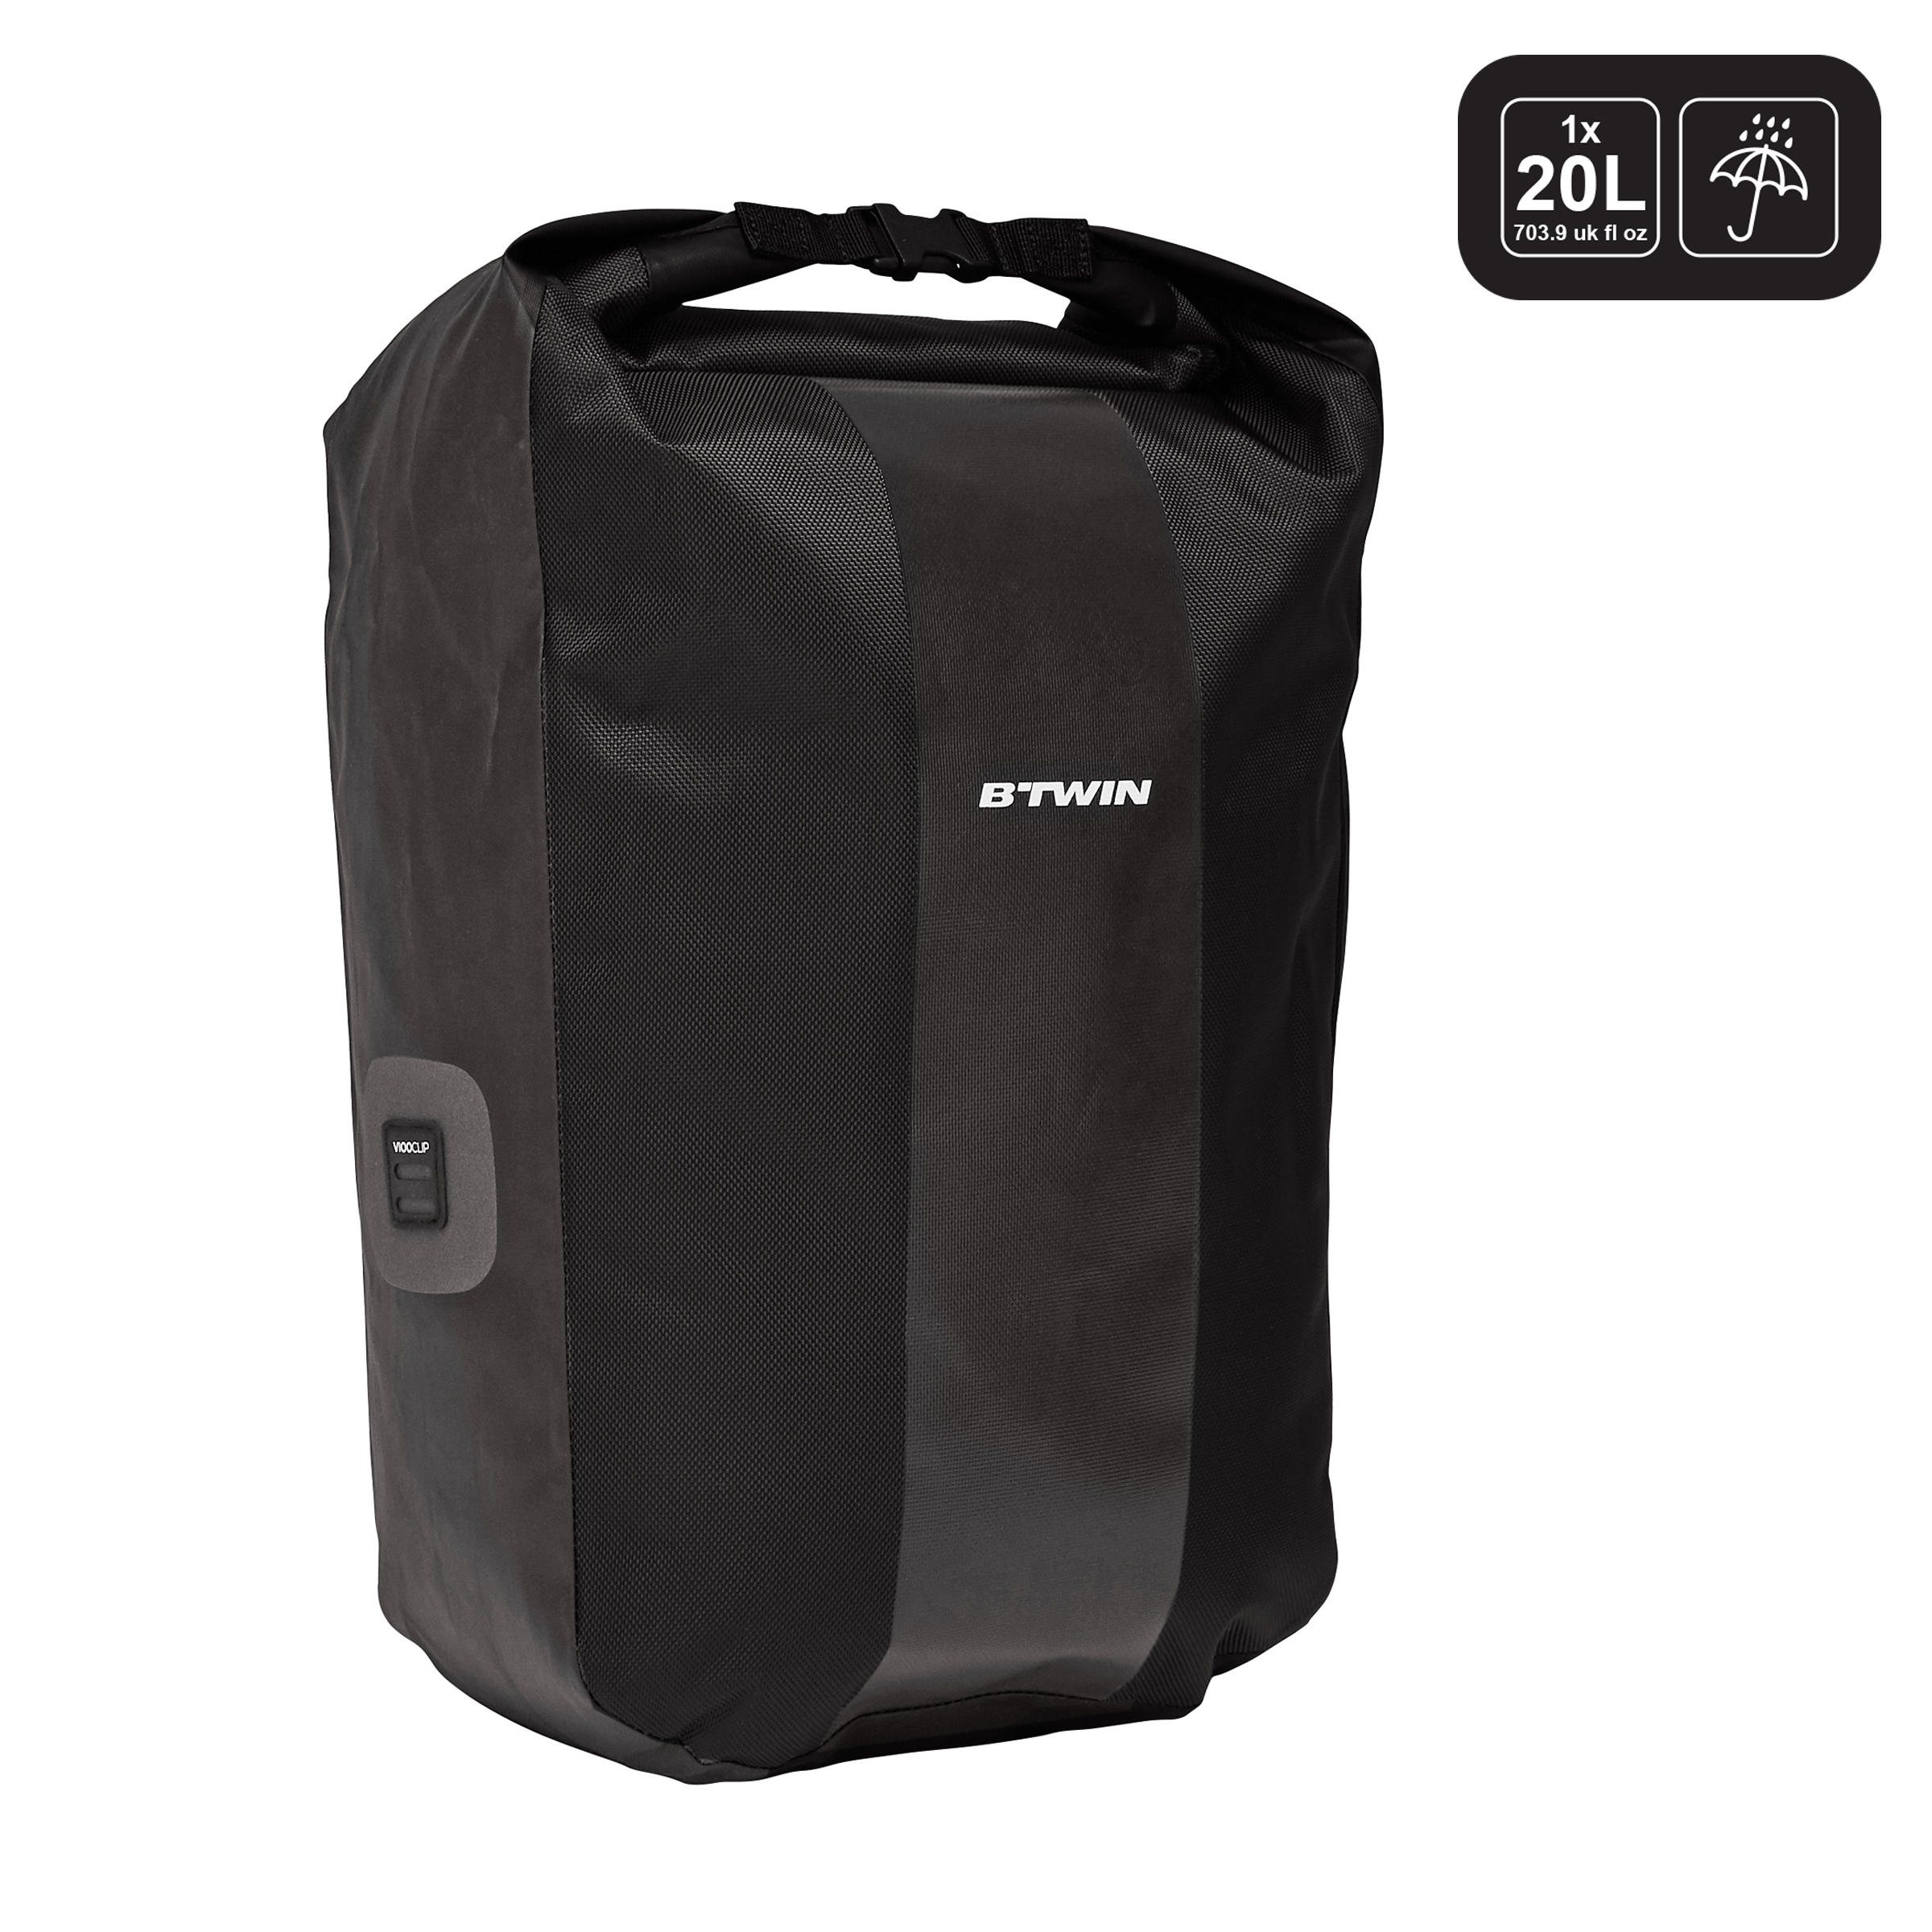 20 500 Ciclismo Equipajes Impermeable Porta Negro L Bolso 6ygYfb7